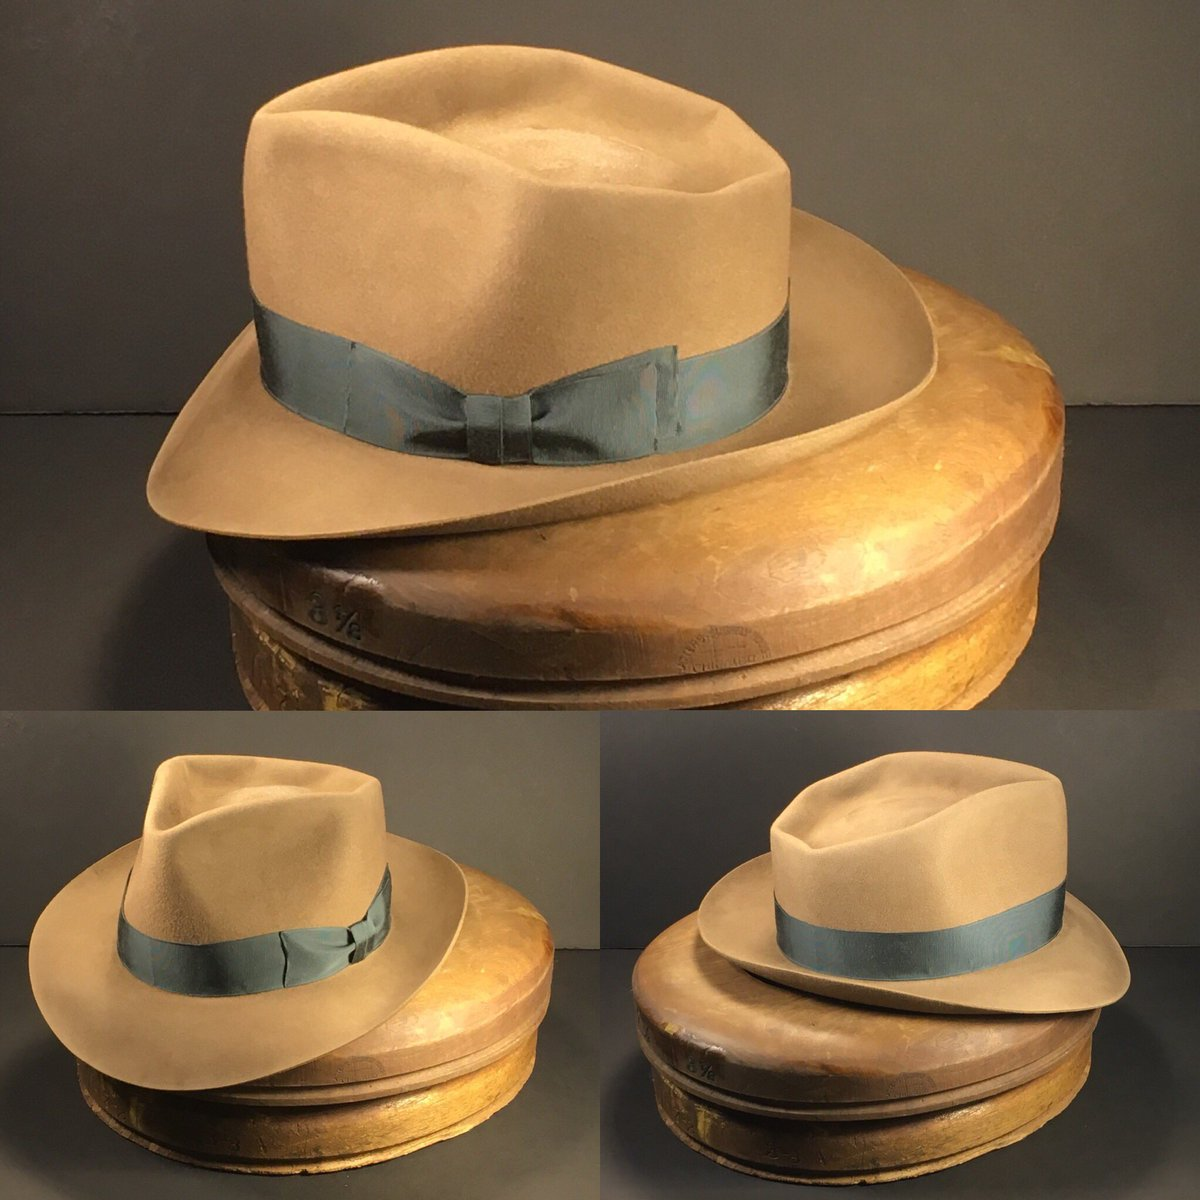 bb41097ec0b08 Just finished this whiskey colored 6 point diamond crease with iron colored  vintage grosgrain ribbon.  penmanhats  OnlyPenman  penmanhats  bespoke ...